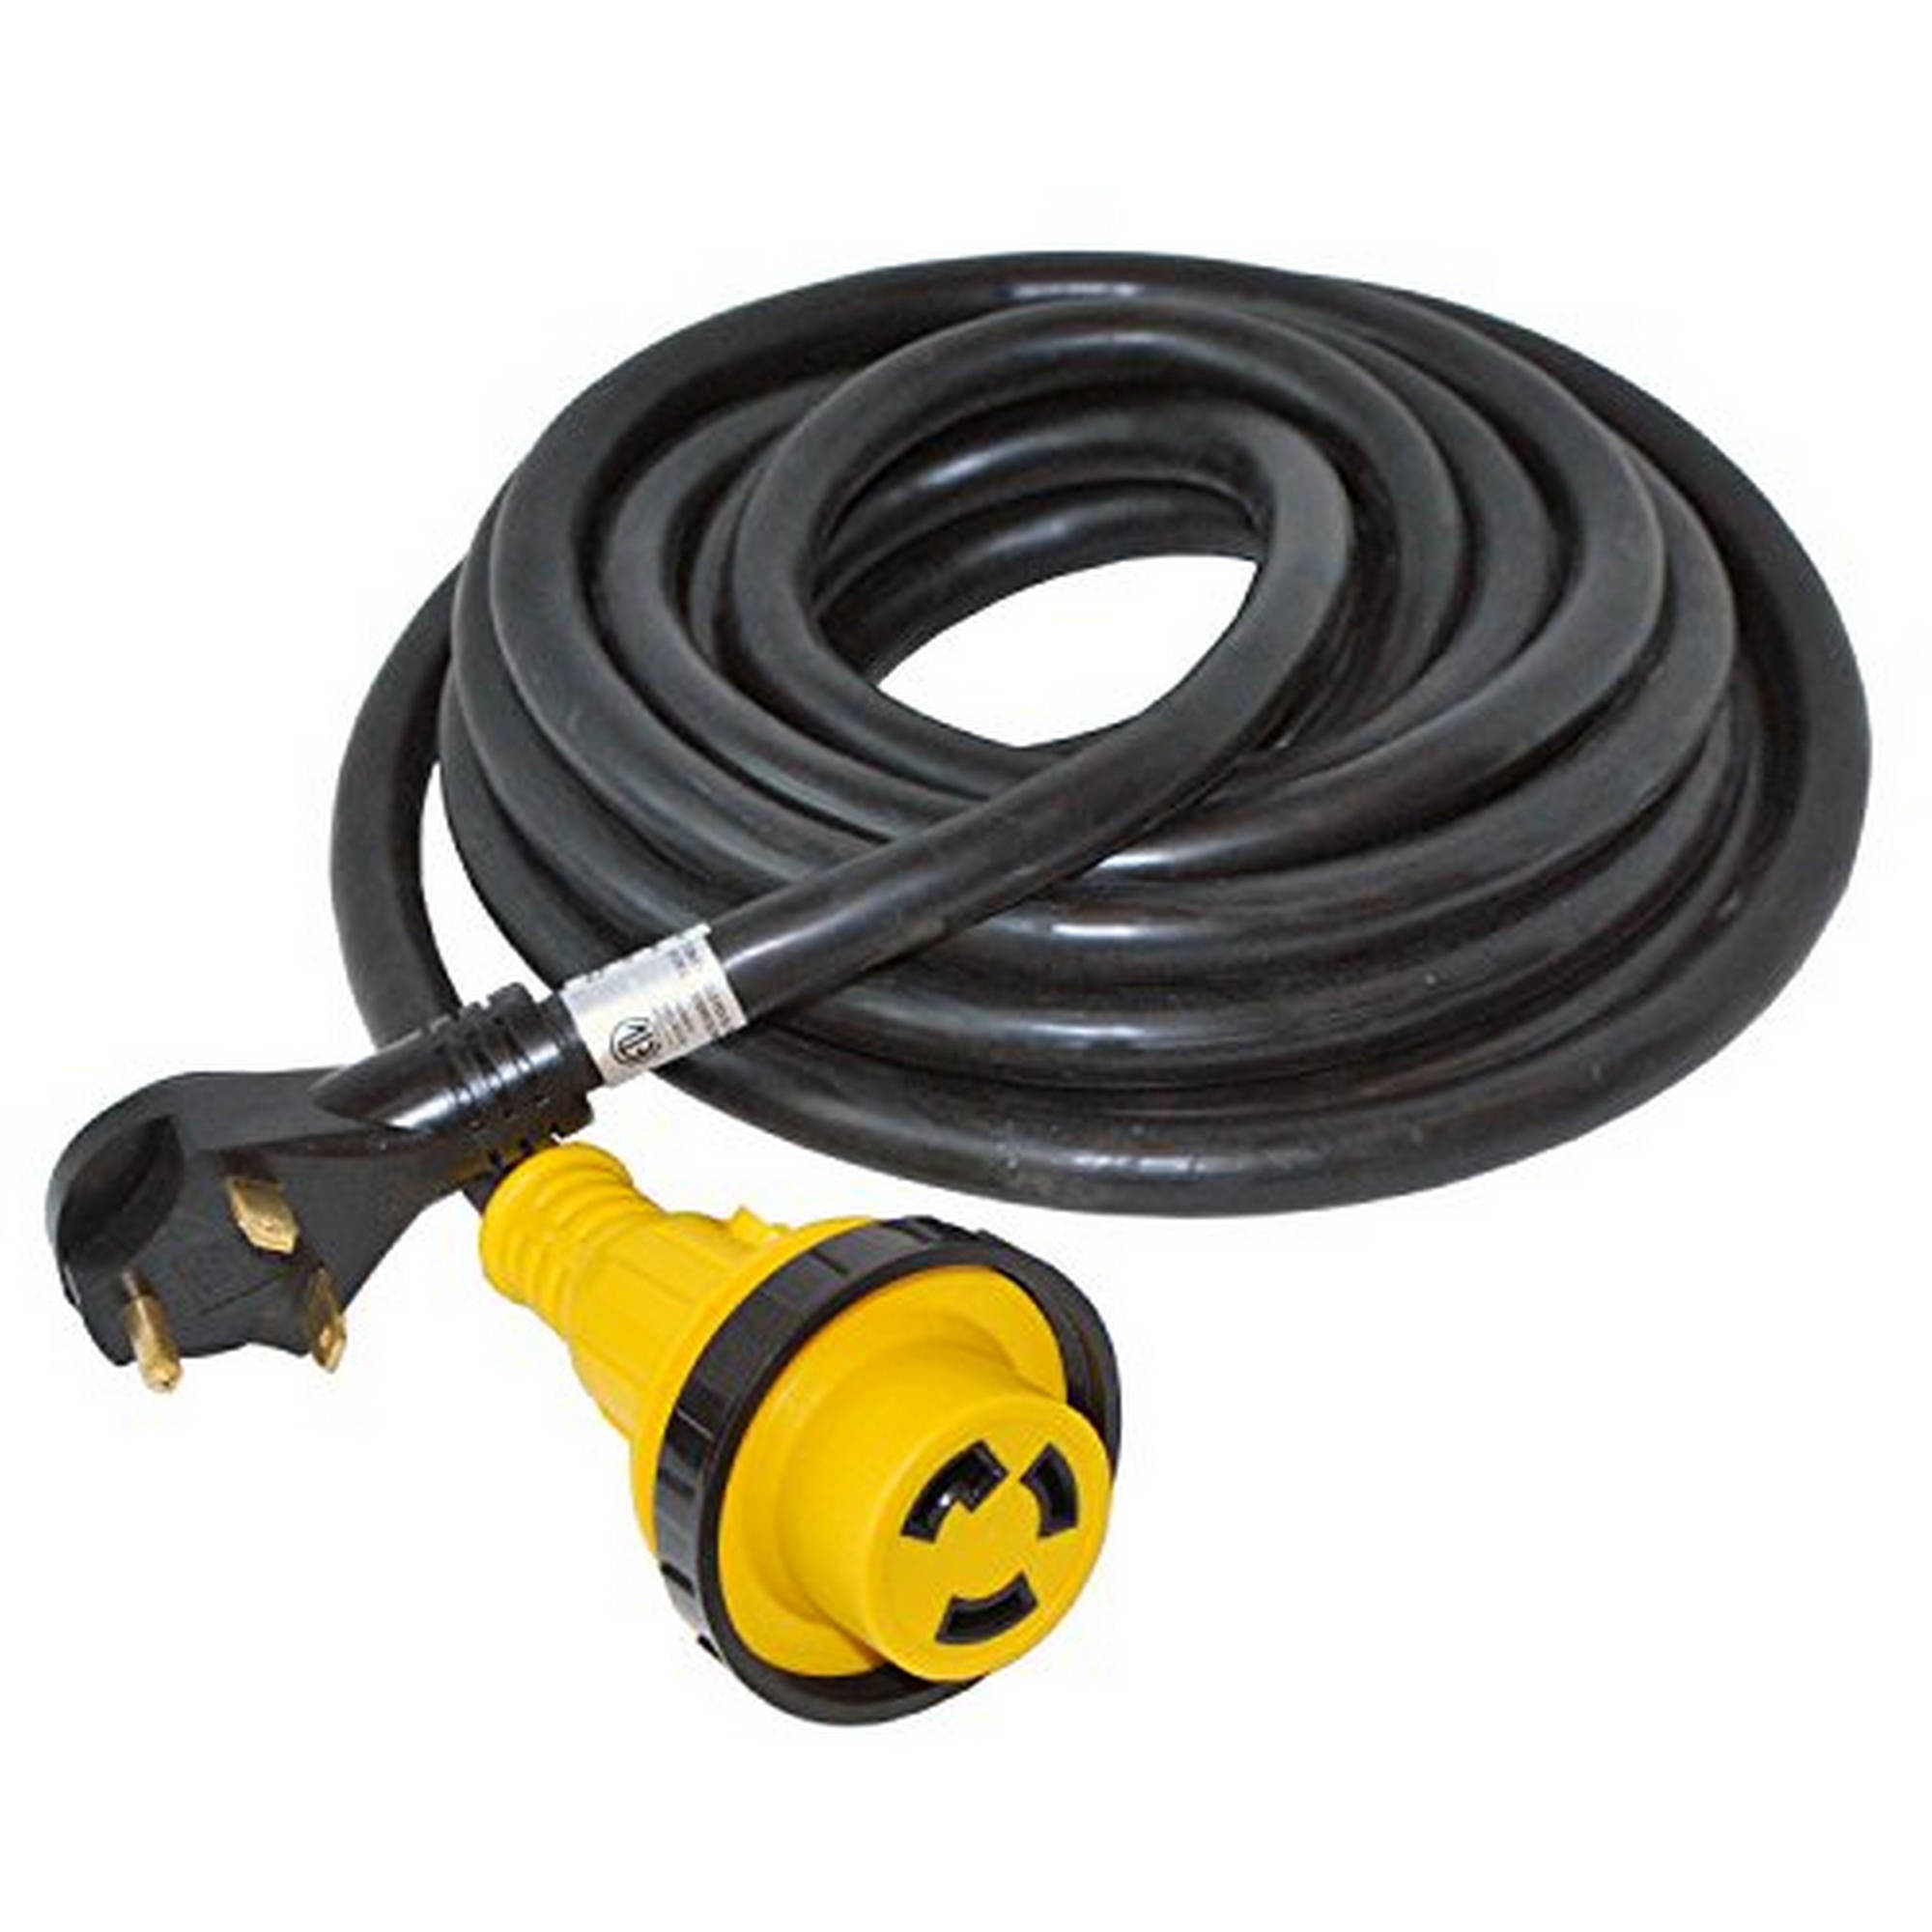 ALEKO RV30-25M 25' 30-Amp 3-Wire RV Cord with Detachable Receptacle Male Plug with Handle